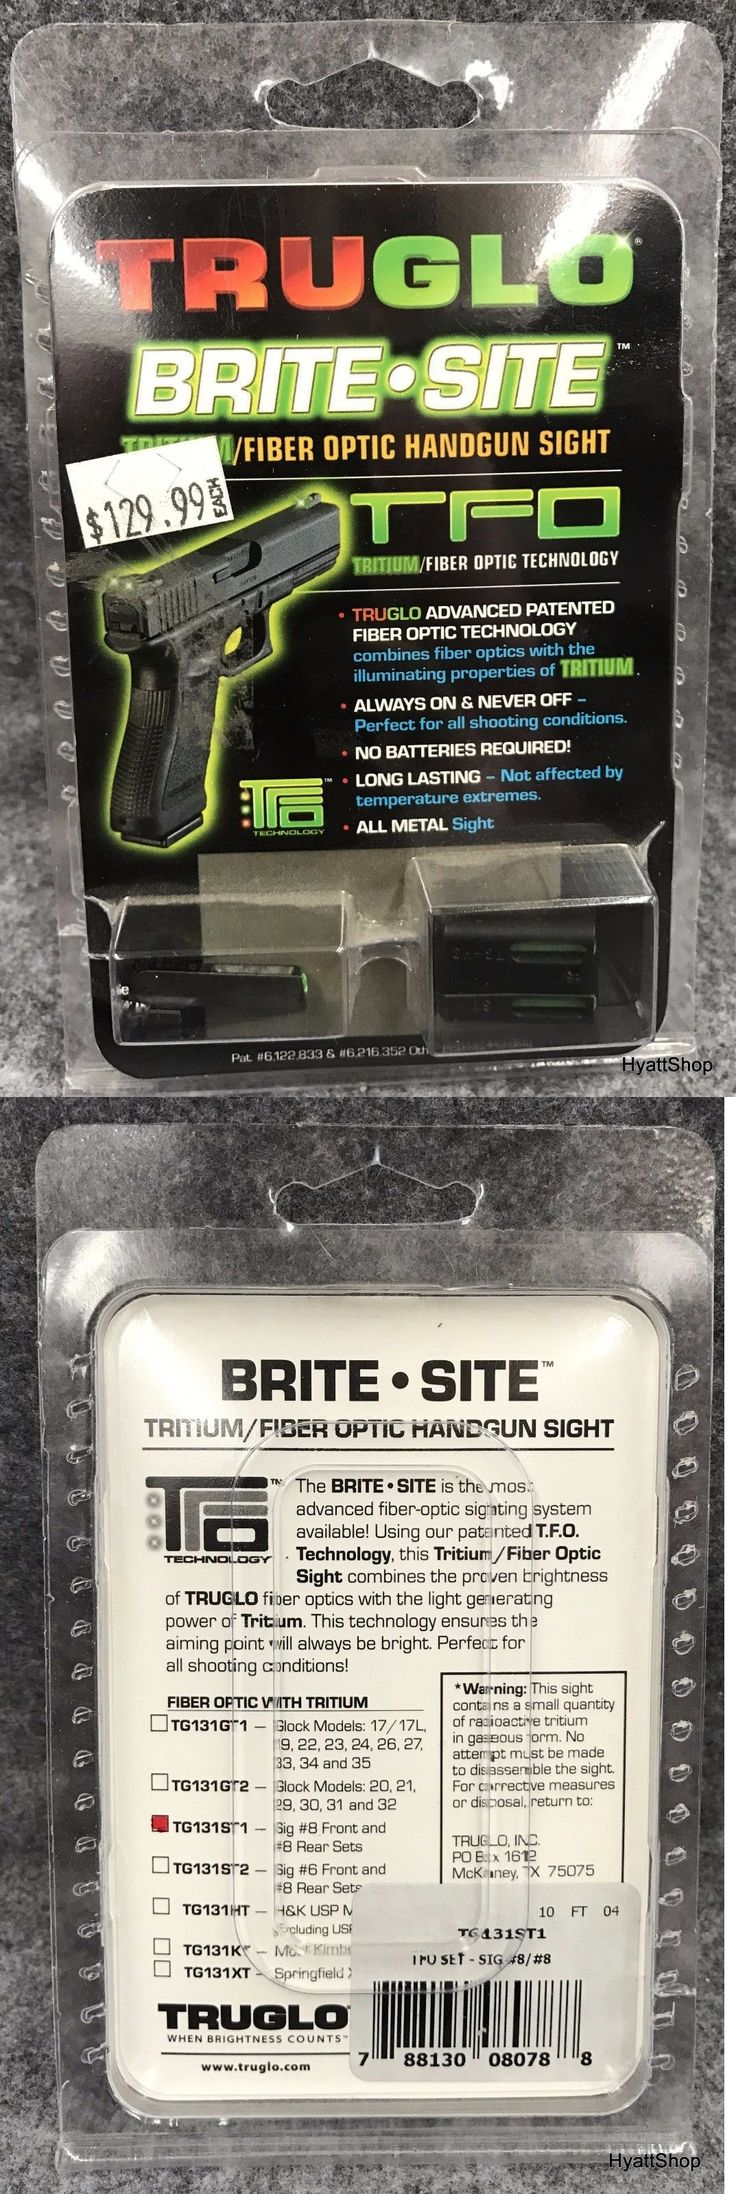 Other Hunting Scopes and Optics 7307: Truglo Brite-Site Tritium Night Sights Sig #8 Front Rear Green Tg131st1 2010 -> BUY IT NOW ONLY: $72.99 on eBay!